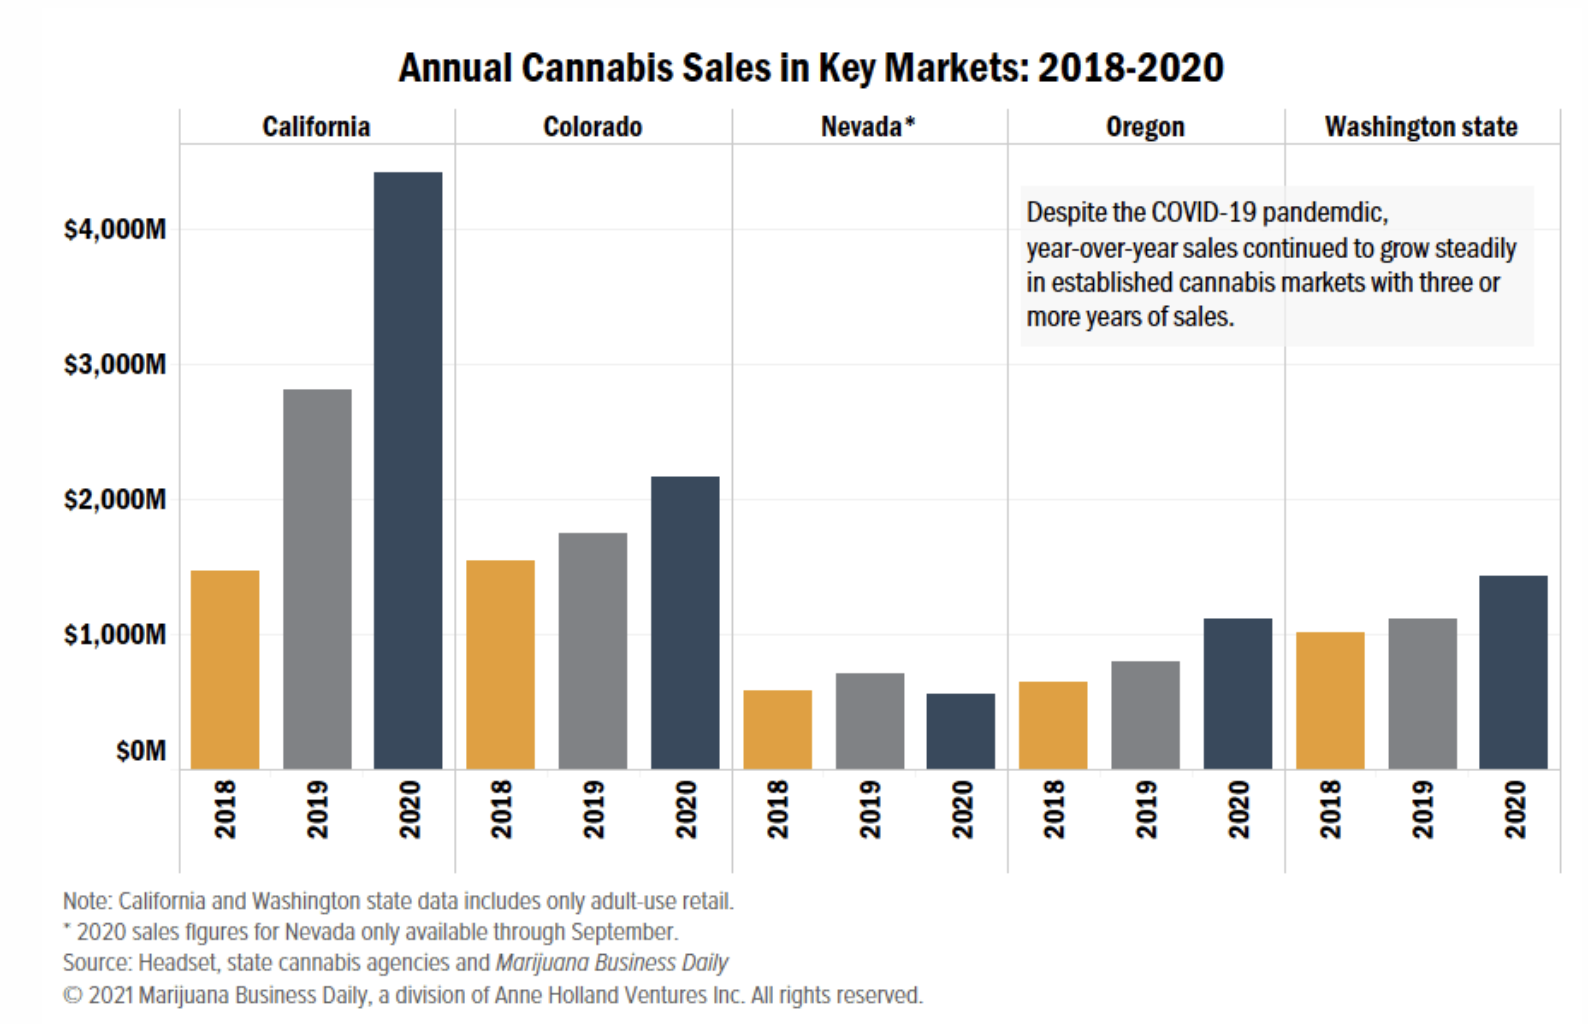 Several key cannabis markets crushed prior sales records in 2020